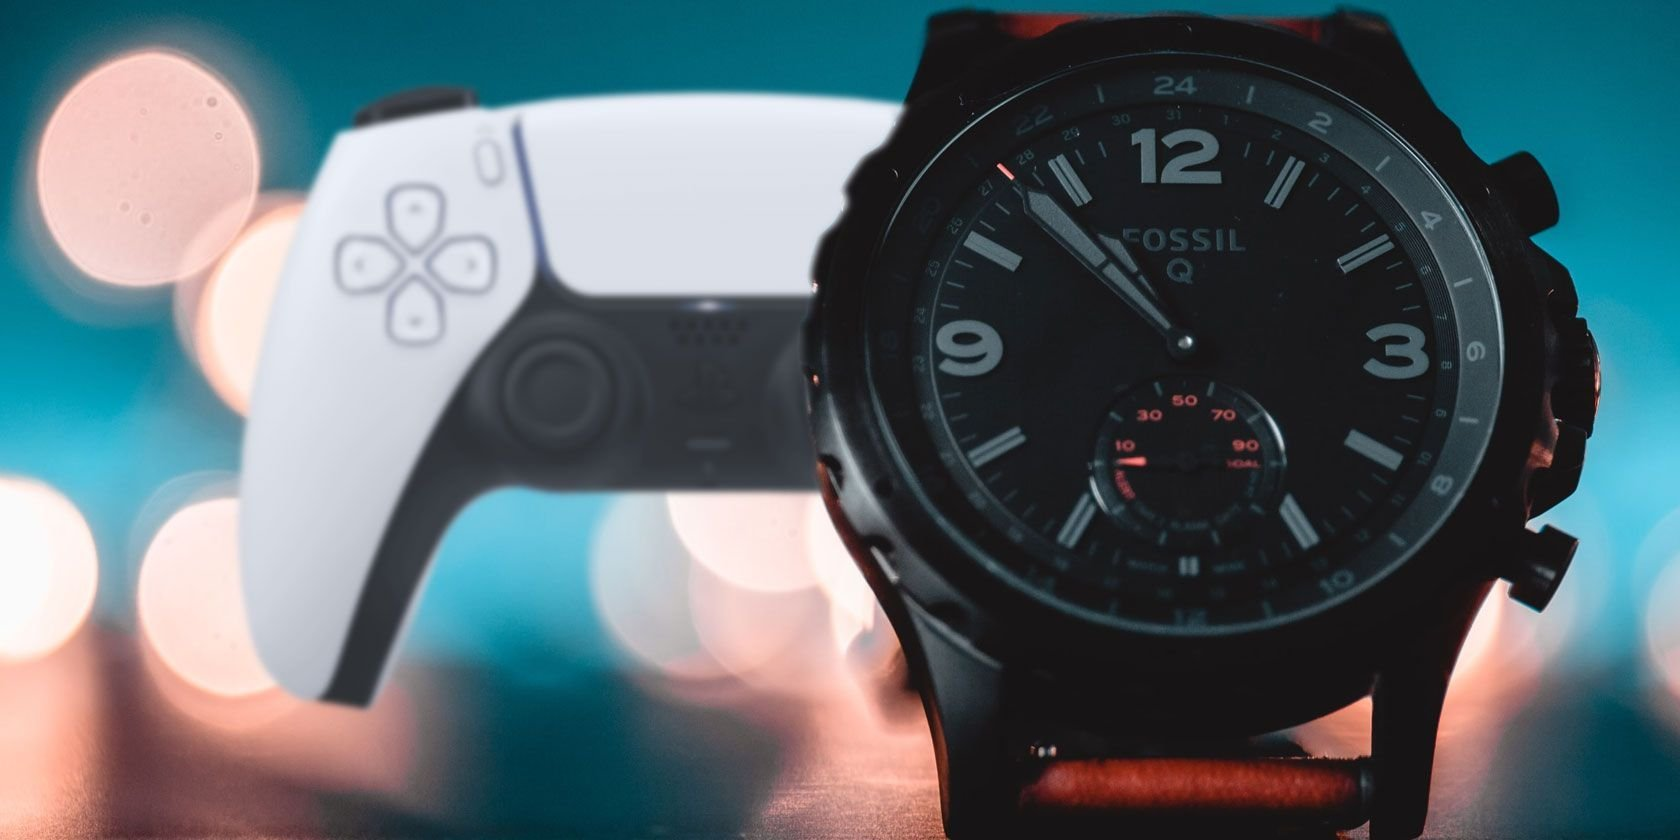 8 Things to Do While You're Waiting to Buy a PS5